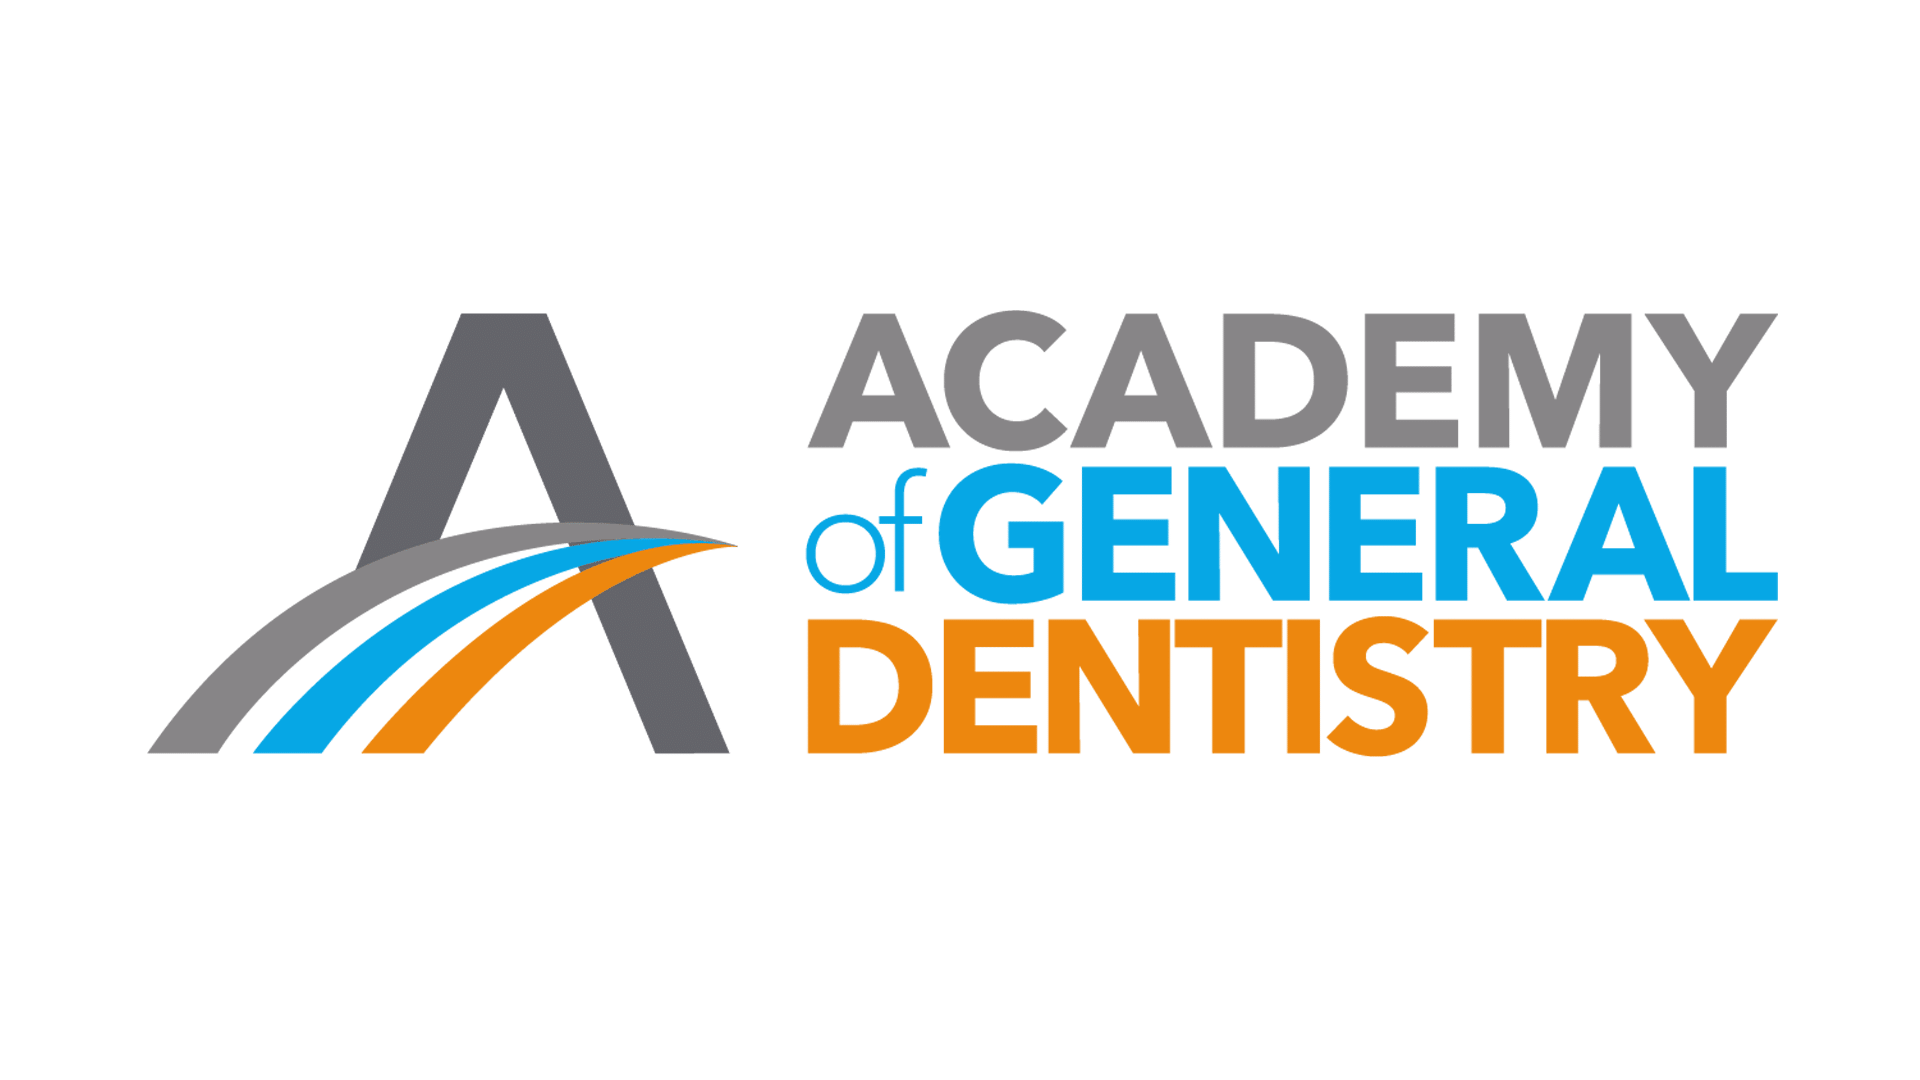 American Academy of General Dentistry Logo dMobile Home Image - Cherrywood Dental Care - Dentist in Savage, MN